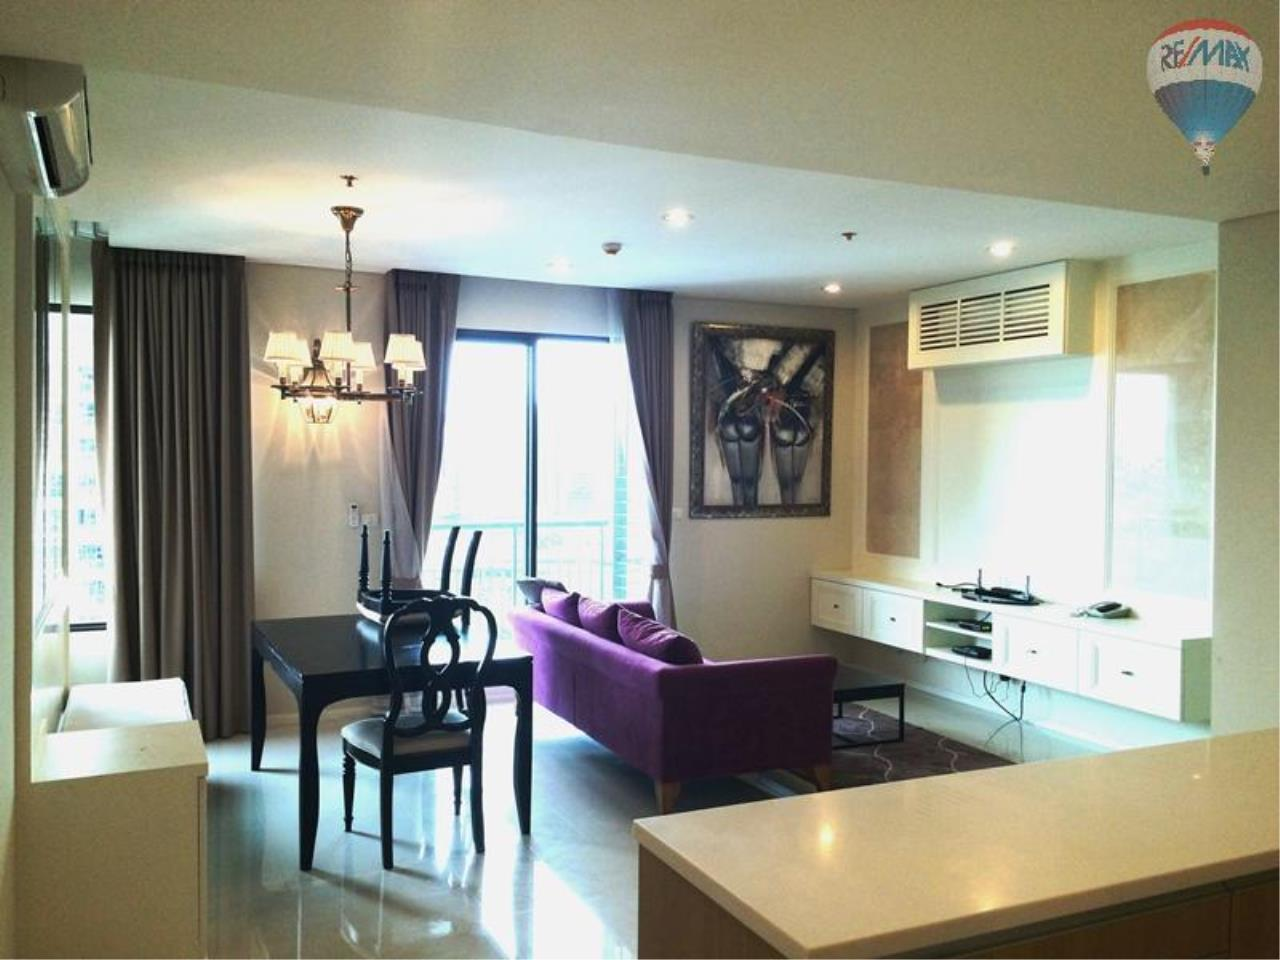 RE/MAX Properties Agency's Condo for RENT 2B/2B on Asoke, 86 sq.m., good view close to Airport link 4